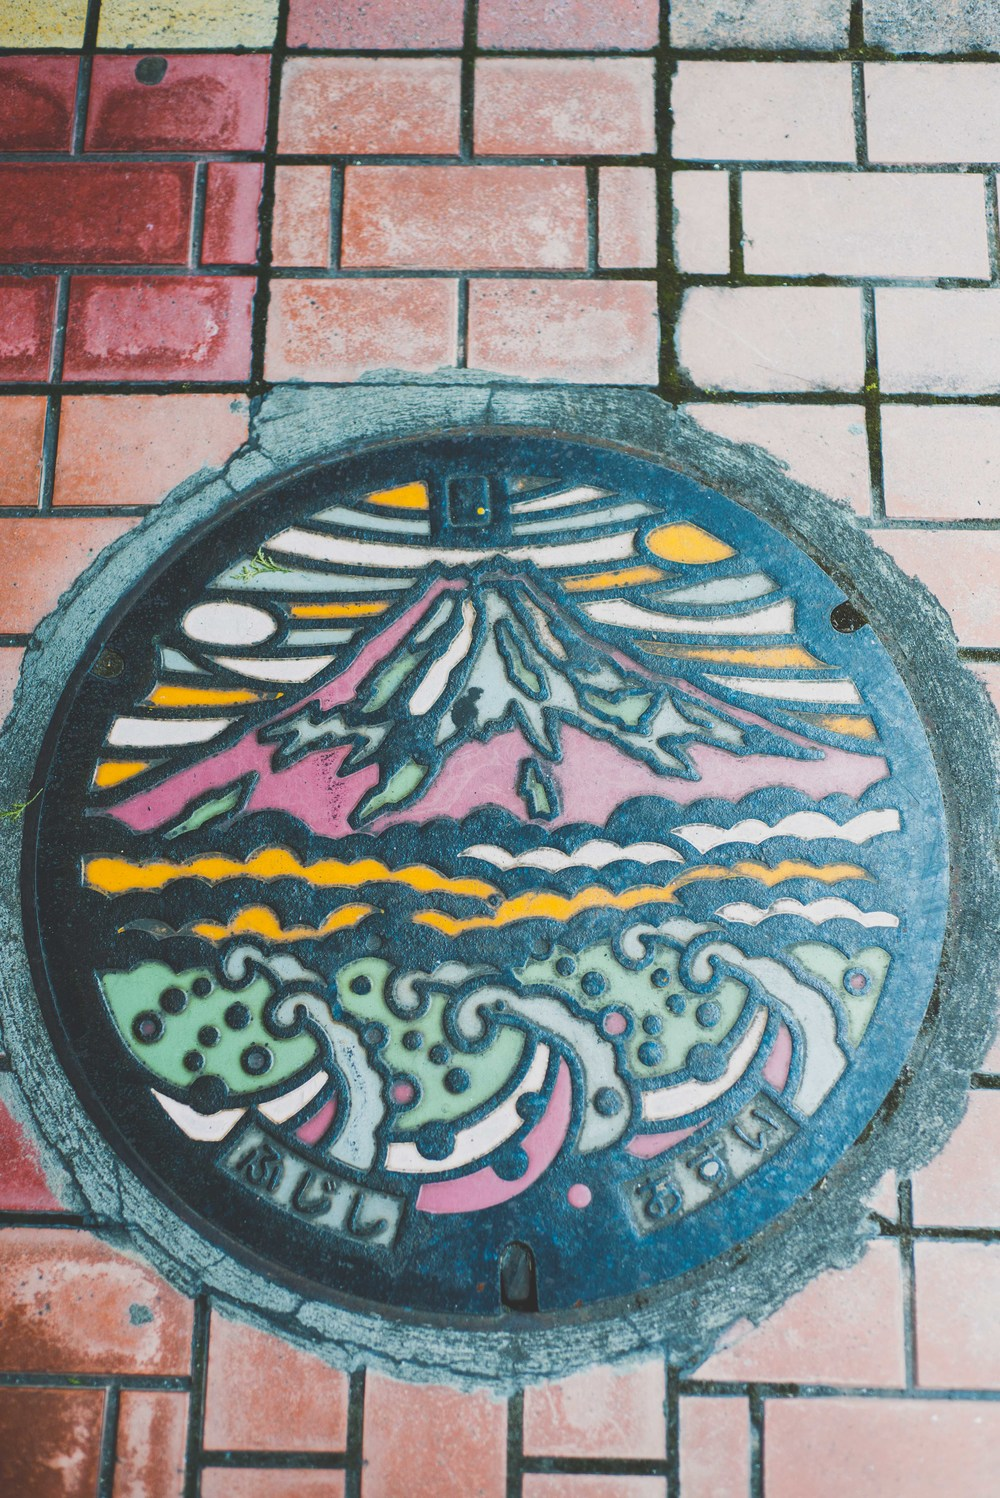 Even the manhole covers are pretty